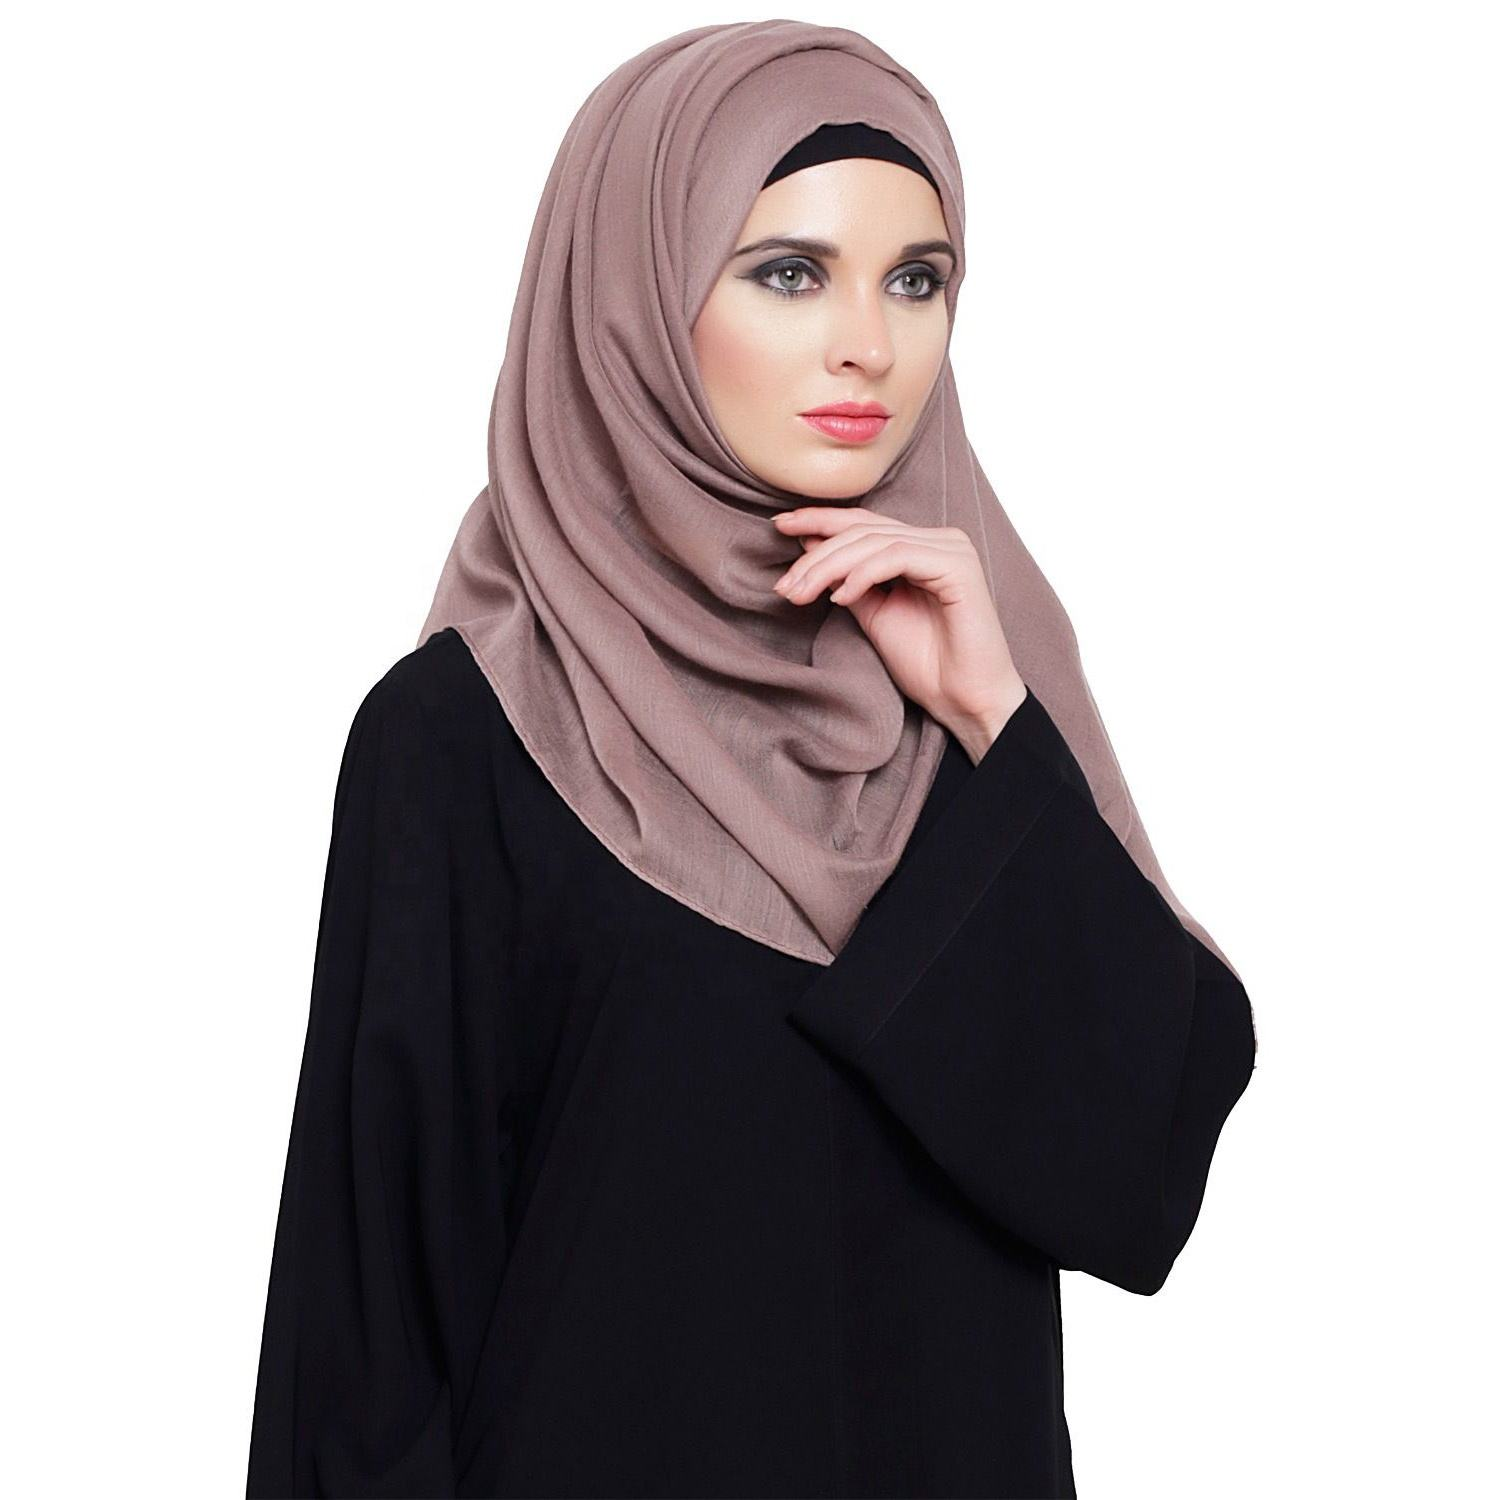 new breathable latest style long length New Fashionable Scarf Plain Chiffon Scarf Women Hijab